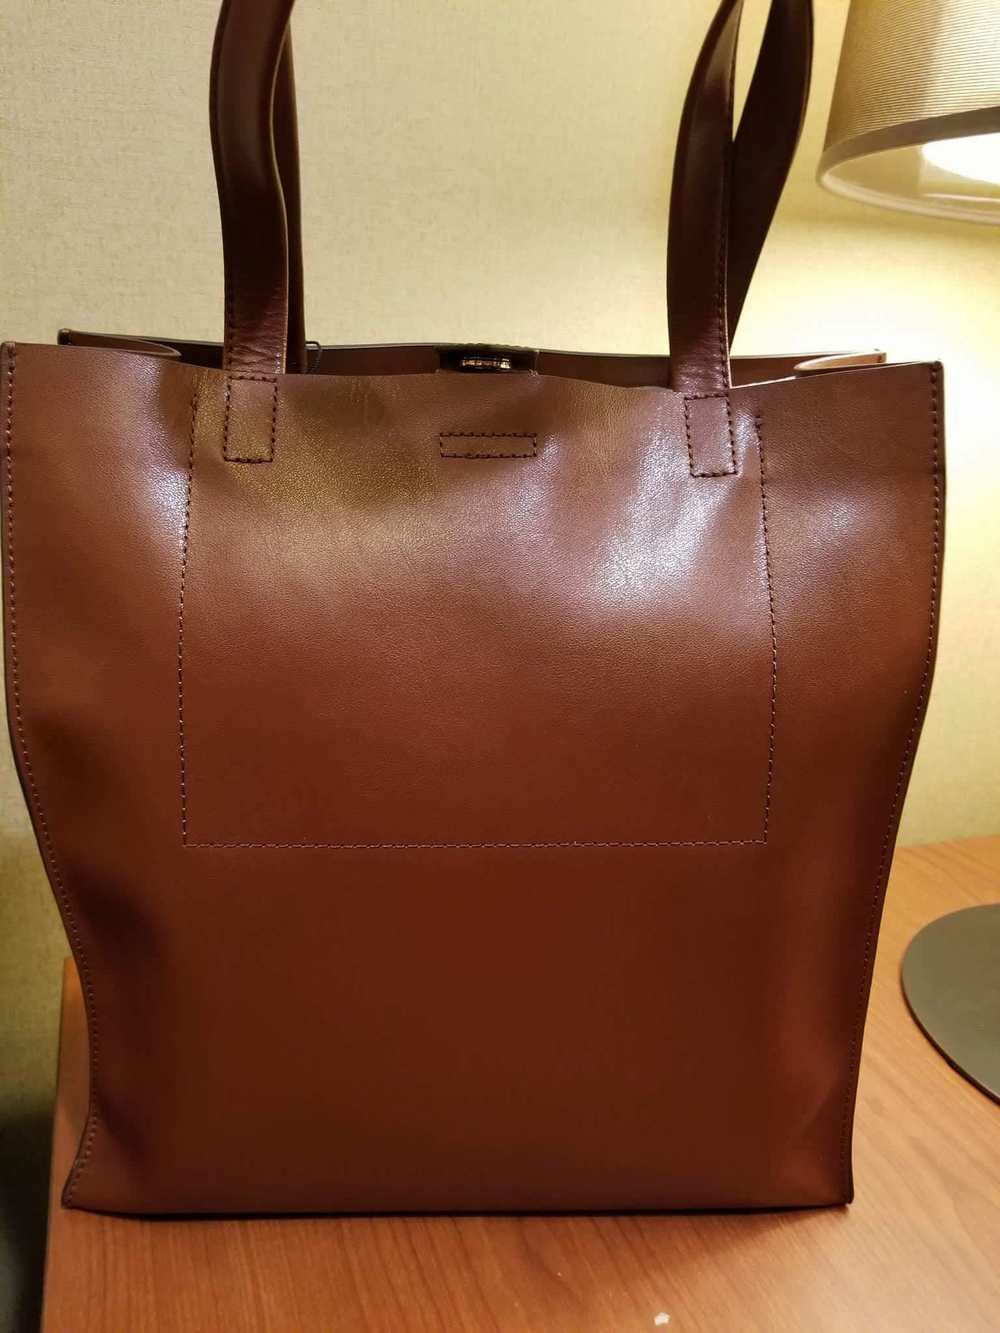 - Banana Republic Bag